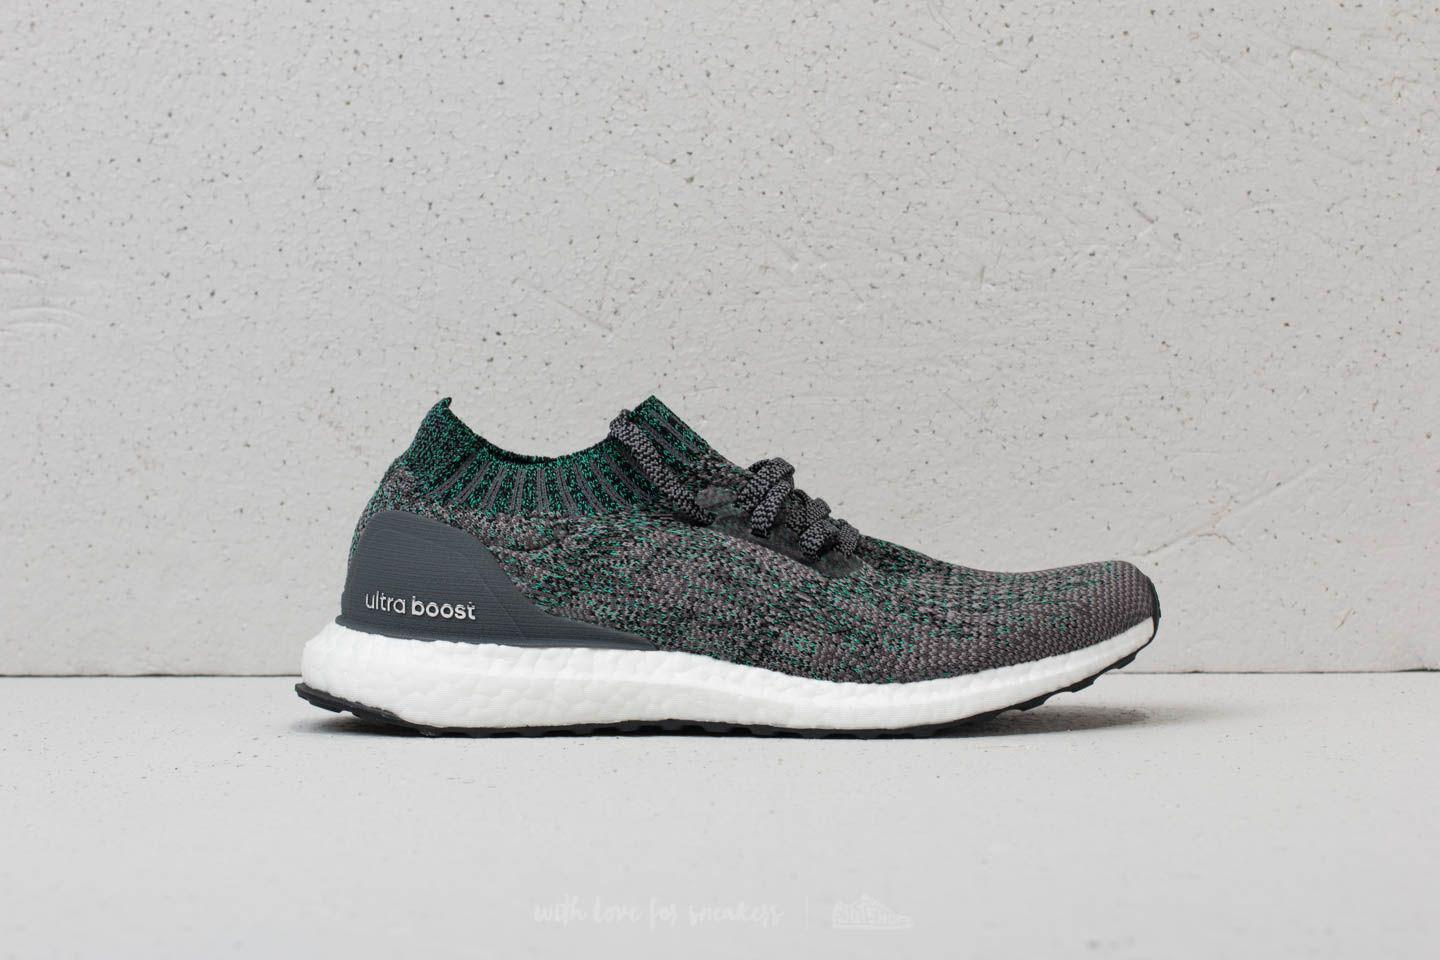 new style b7c84 c1e6b ... inexpensive adidas ultraboost uncaged grey two grey five hi res green.  view fullscreen 07e42 ff8c7